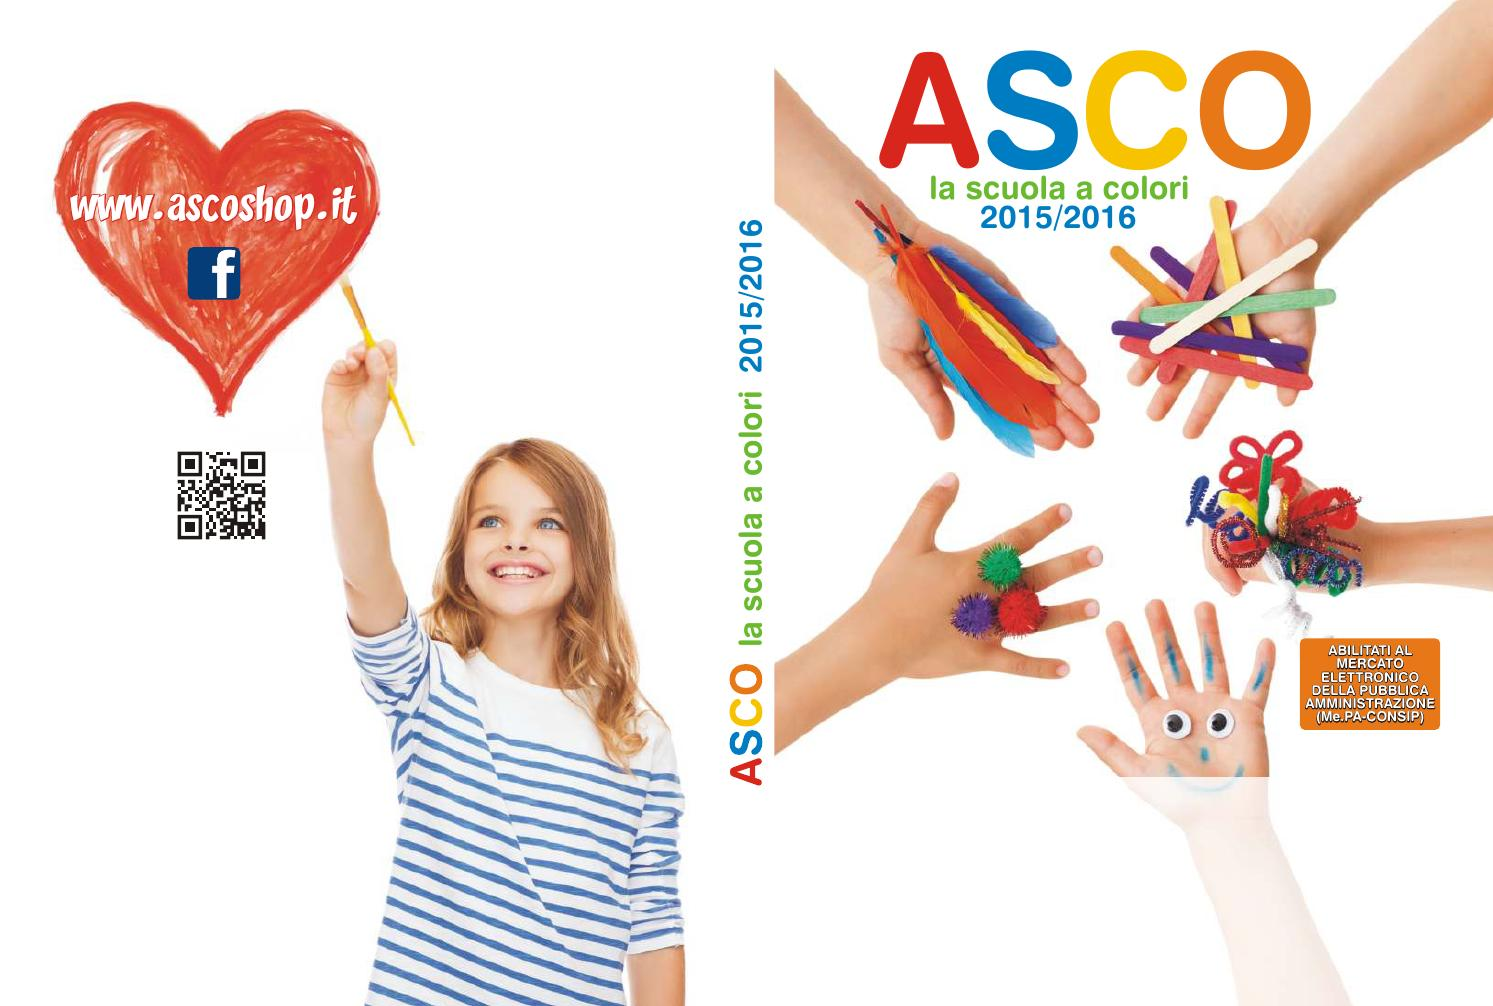 Catalogo Asco 2014-1015 by Publidesign - issuu caf74ef492cb